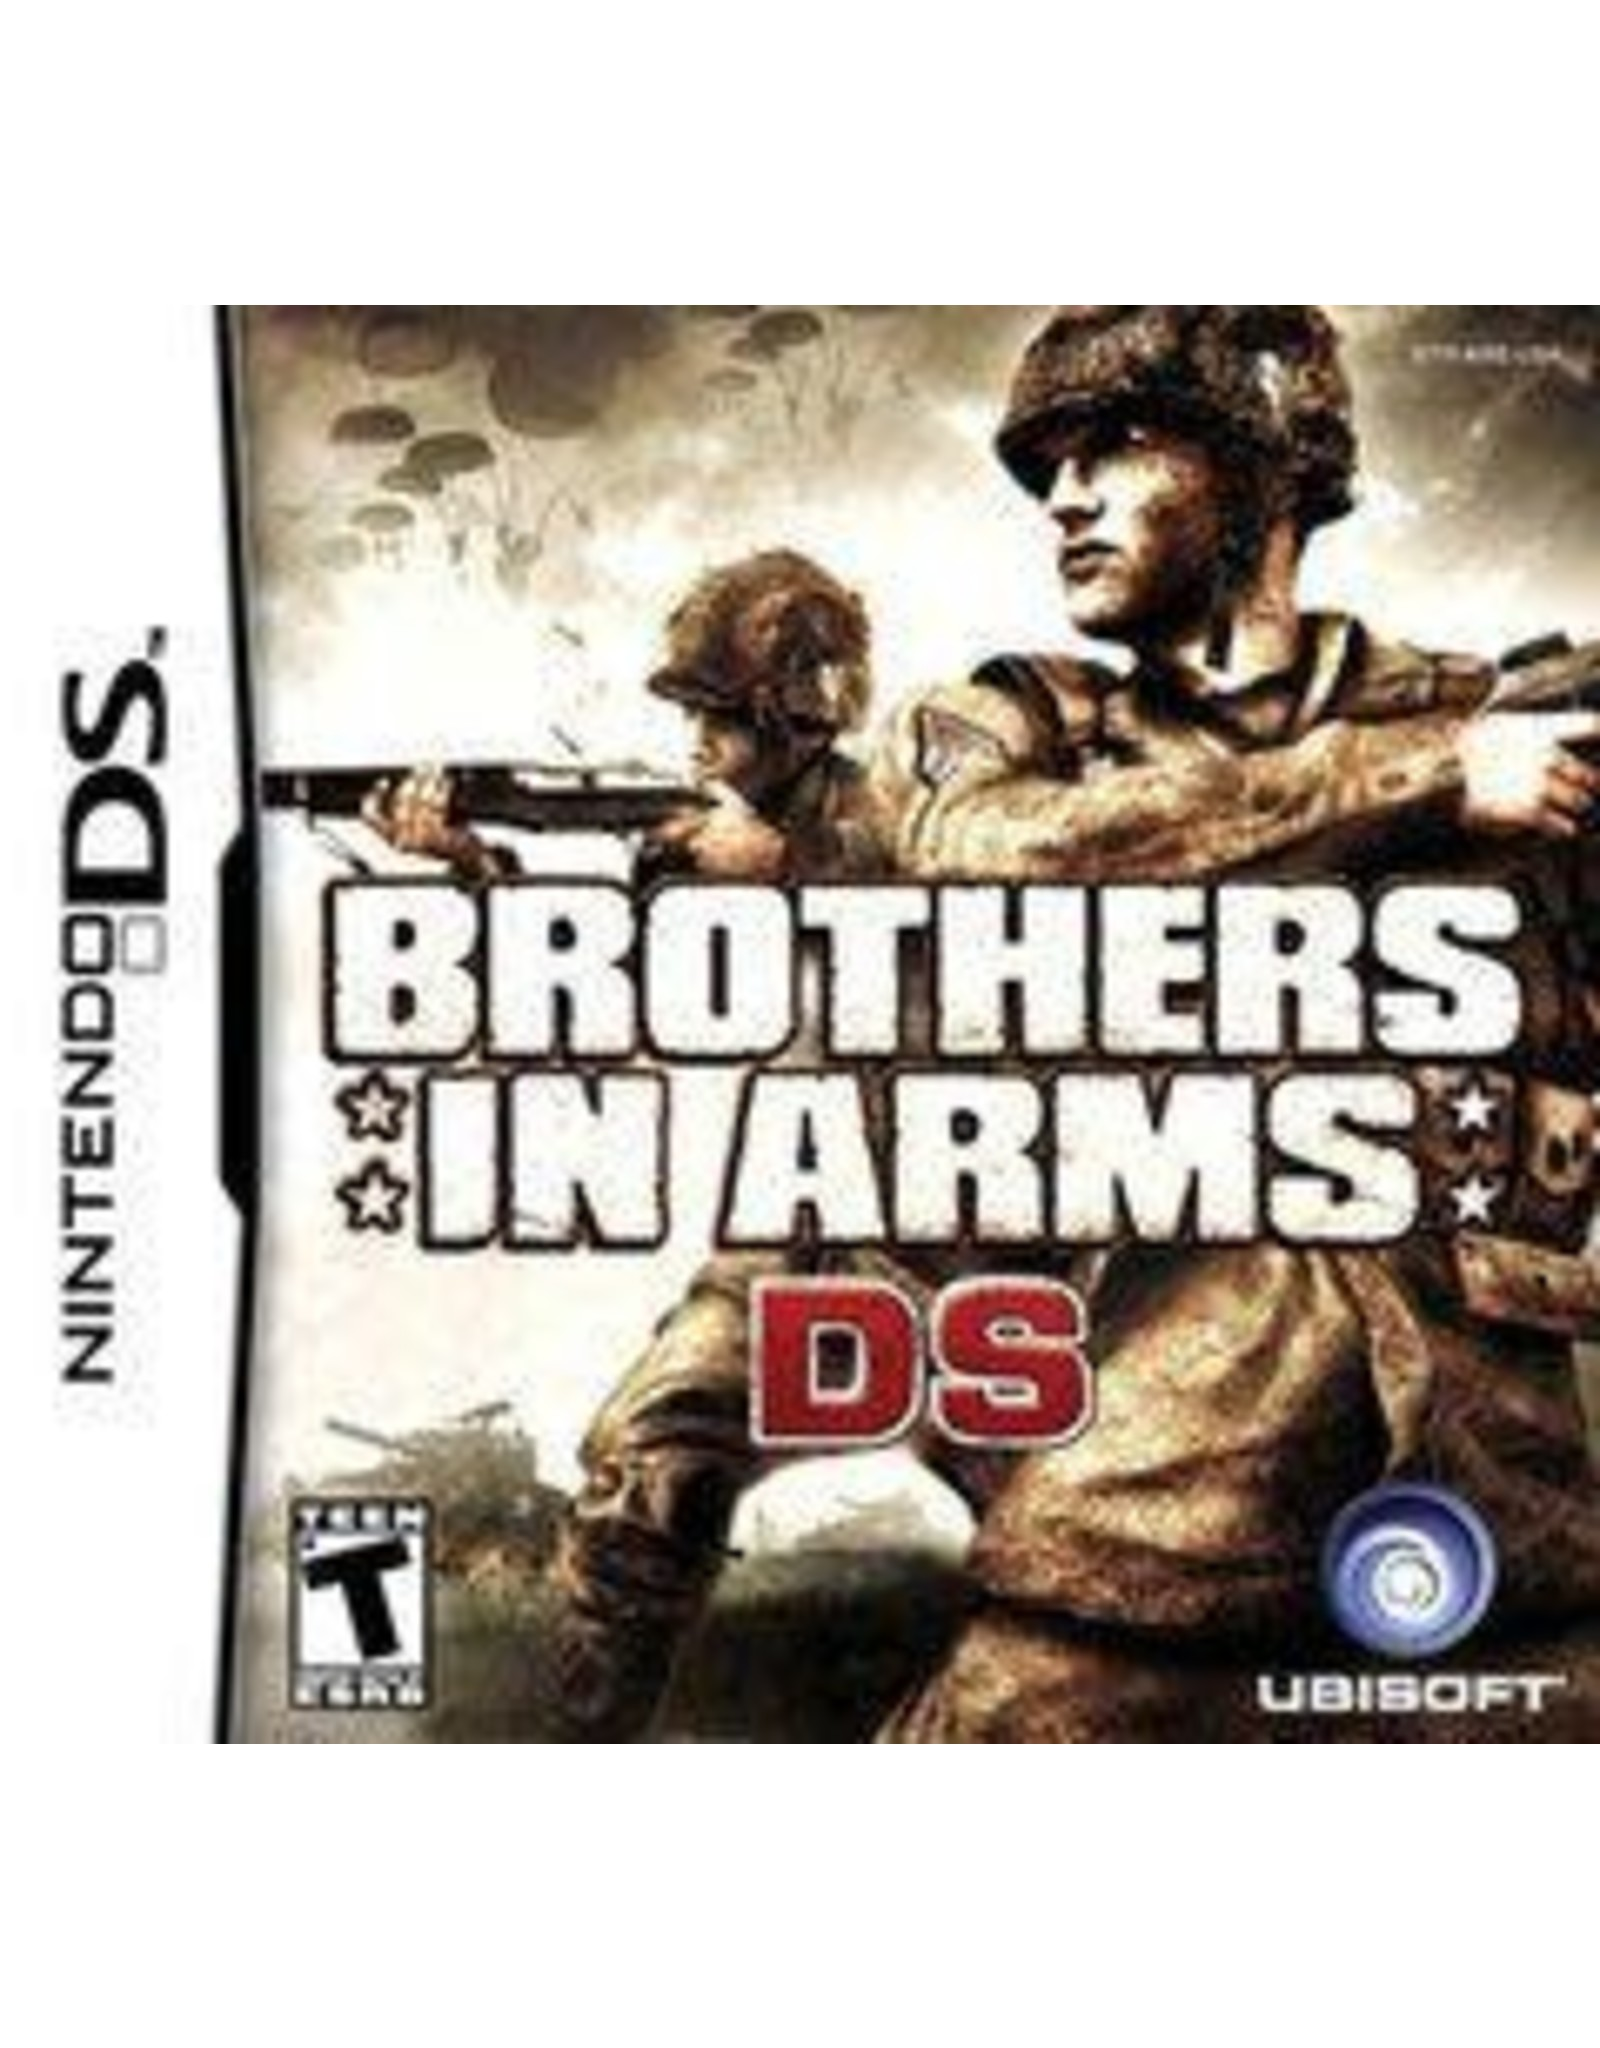 Nintendo DS Brothers in Arms DS (CiB)